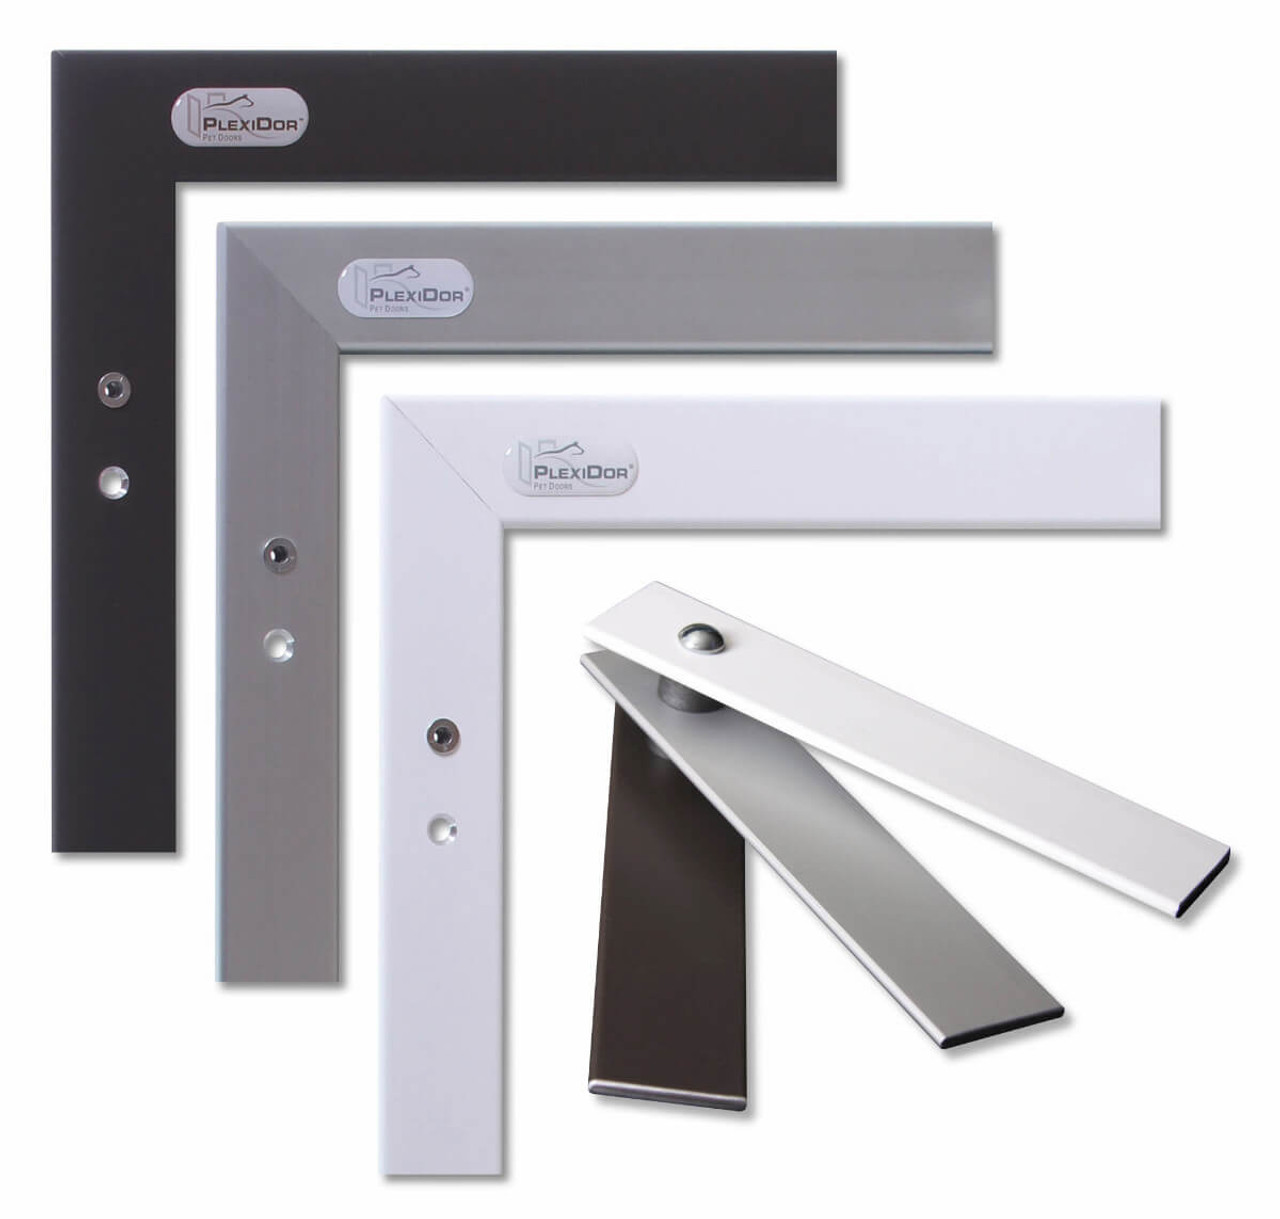 PlexiDor Wall pet doors come in white silver and bronze colors